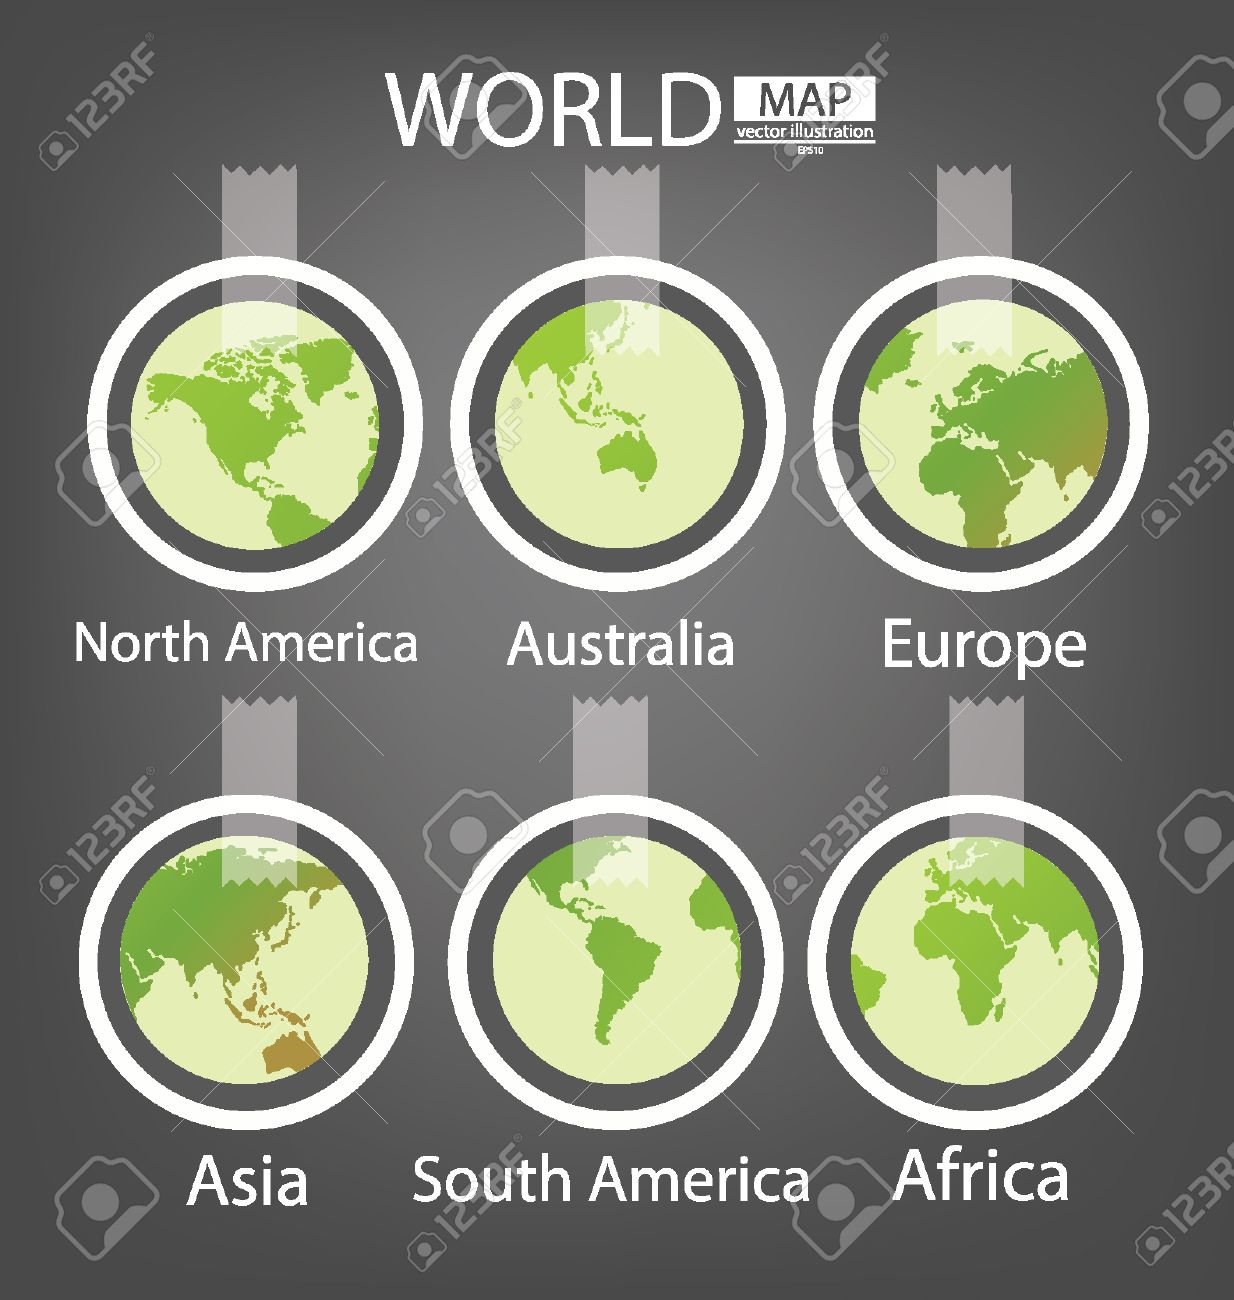 Sticker africa asia australia europe north america royalty world map vector illustration sticker africa asia australia europe north america south america gumiabroncs Images